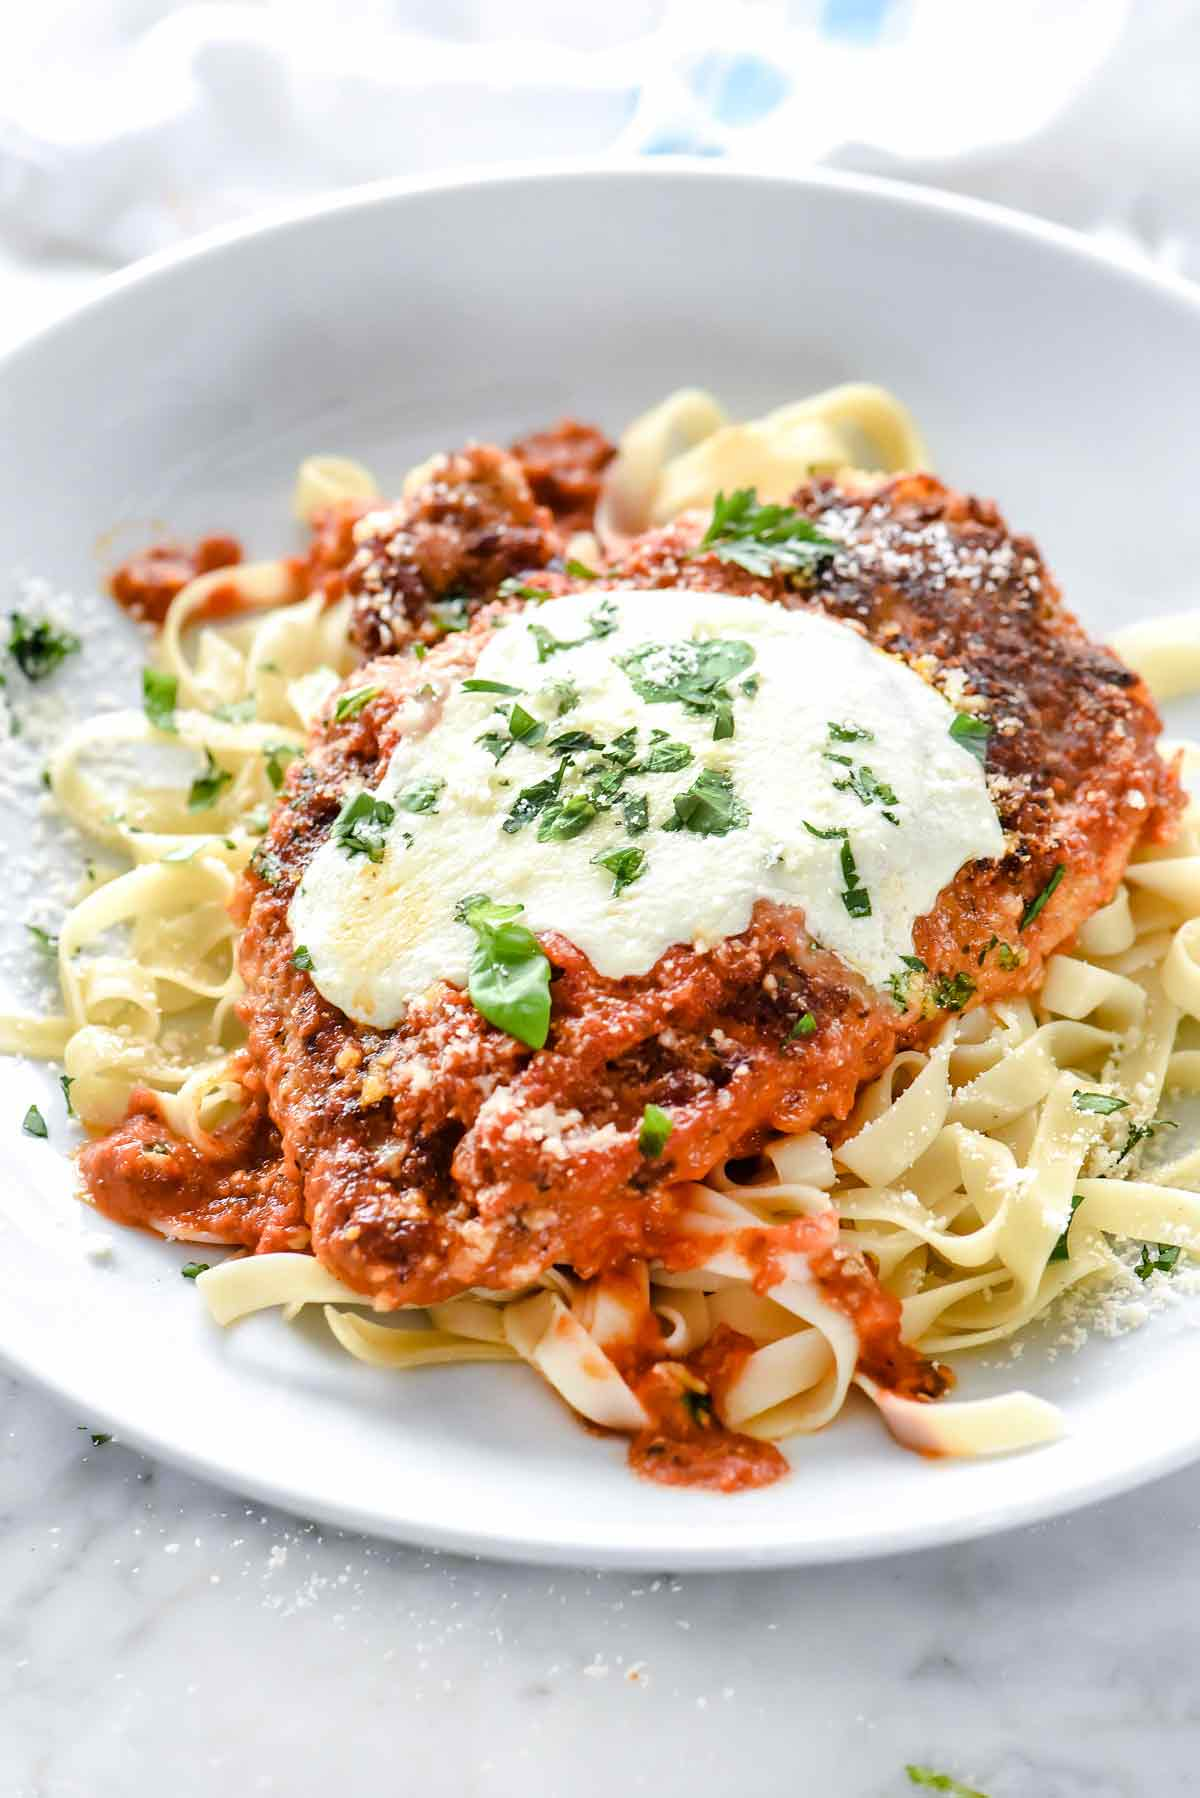 How to make homemade chicken parmesan foodiecrush how to make chicken parmesan foodiecrush chicken italian dinner forumfinder Choice Image